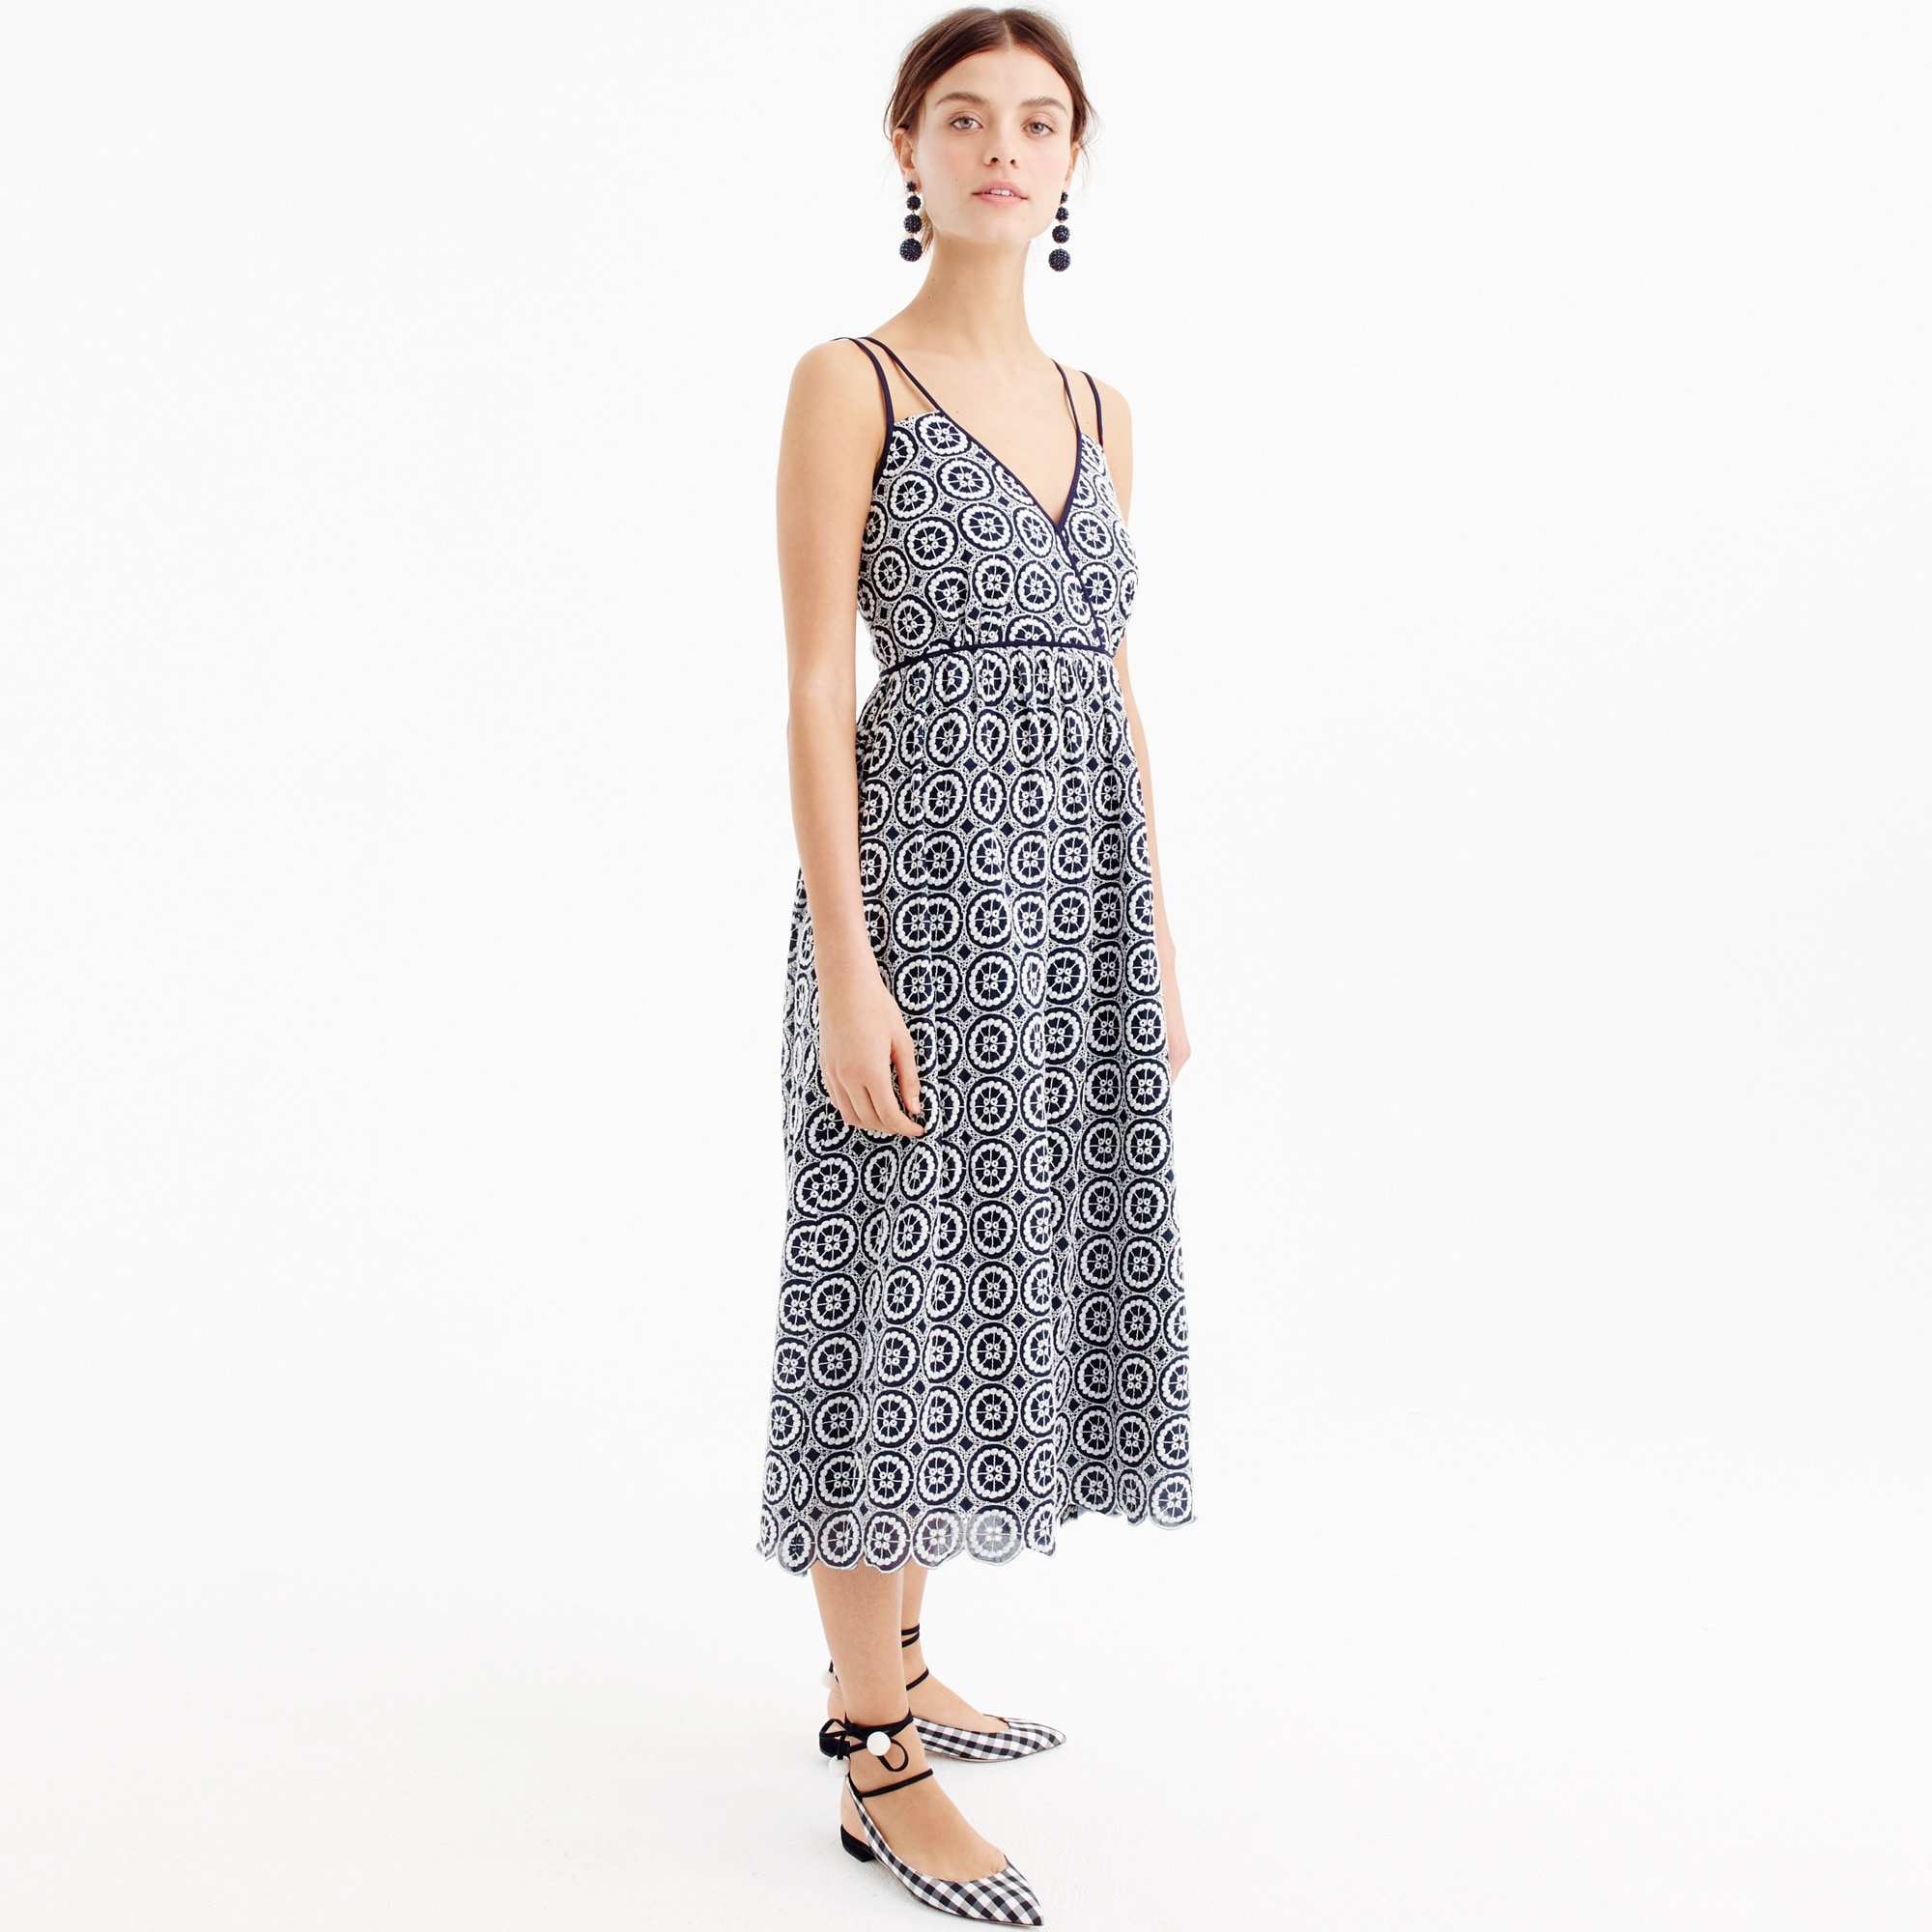 Petite double-strap midi dress in eyelet